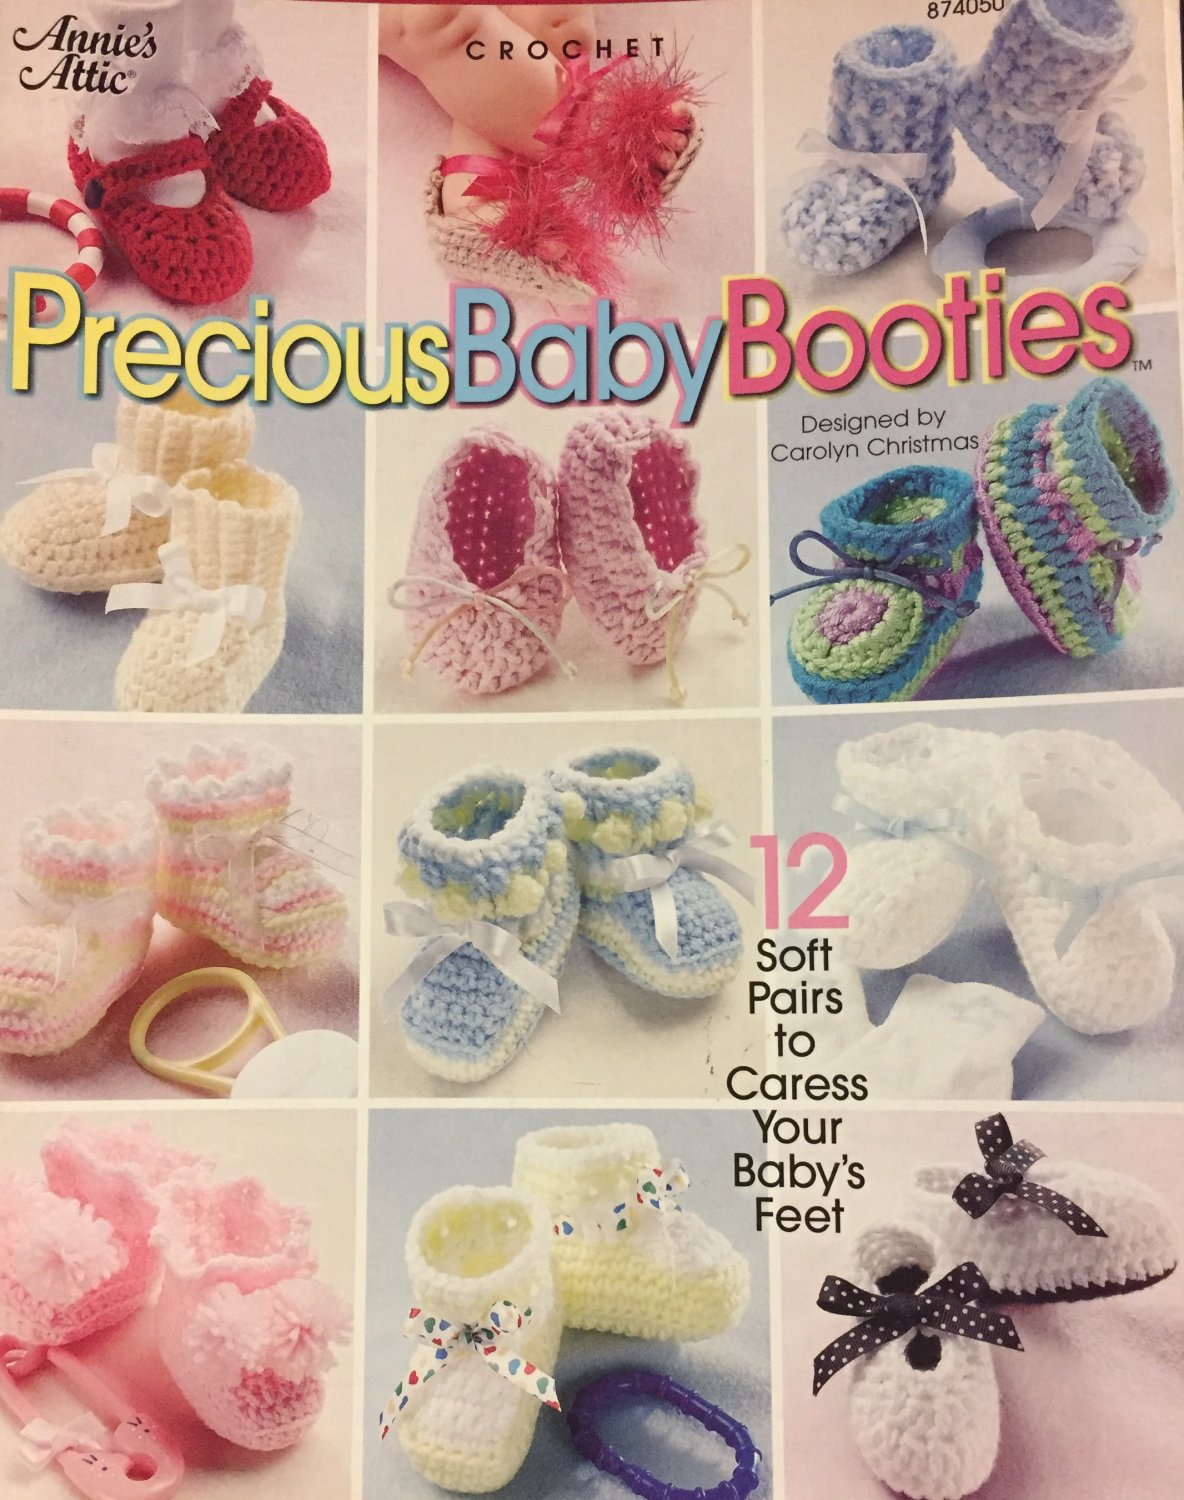 Precious Baby Booties Crochet Patterns Annie's Attic 874050